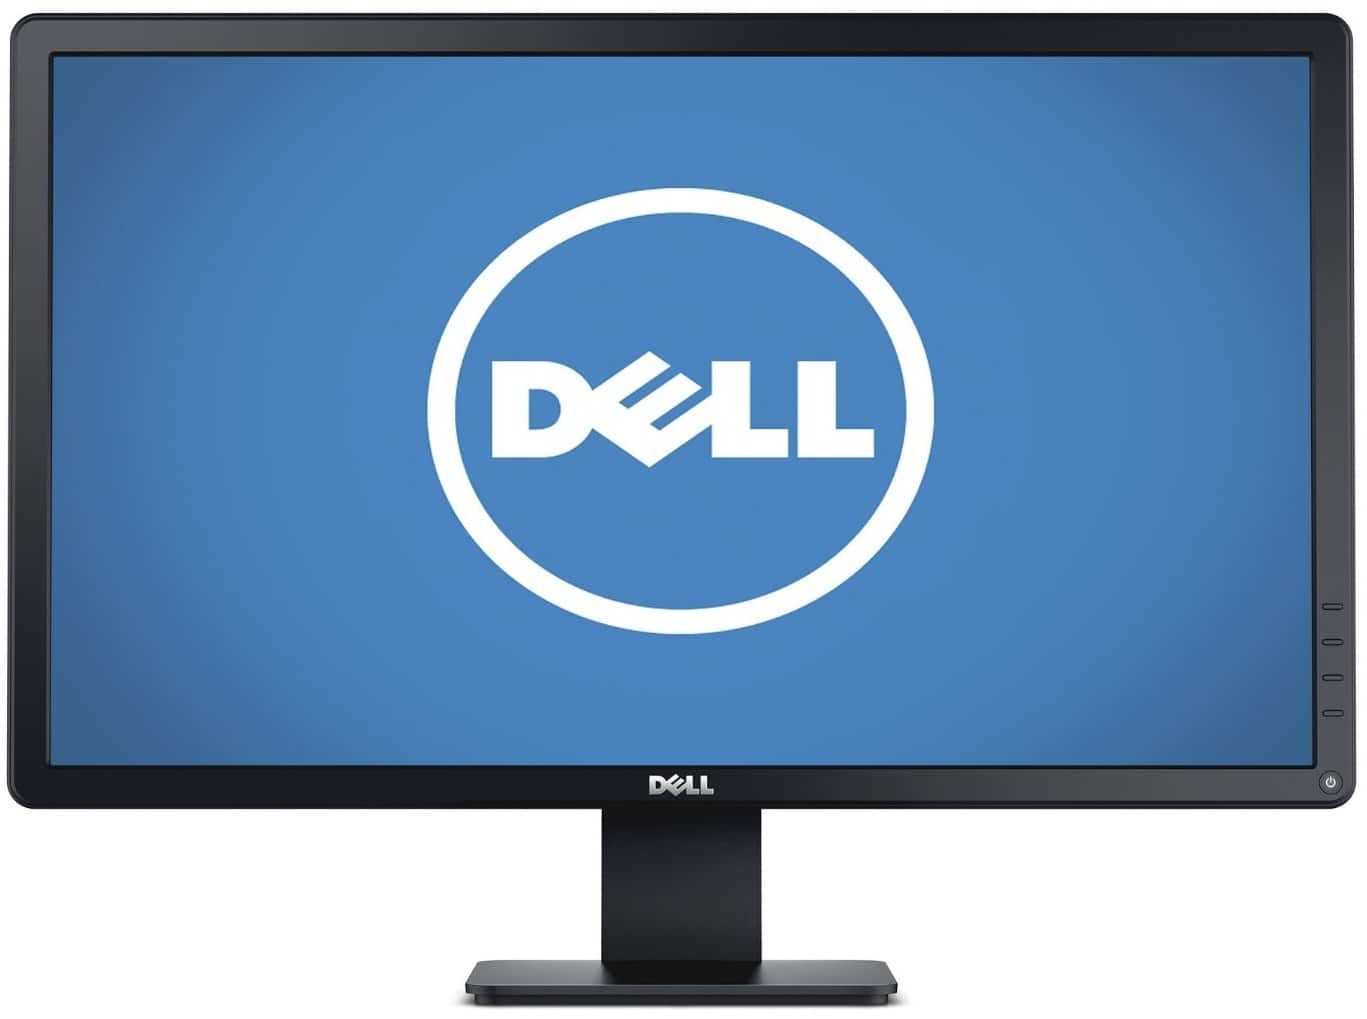 """Dell™ E2414H 24"""" Full HD Widescreen LED LCD Monitor $99.99 shipped QUILL"""